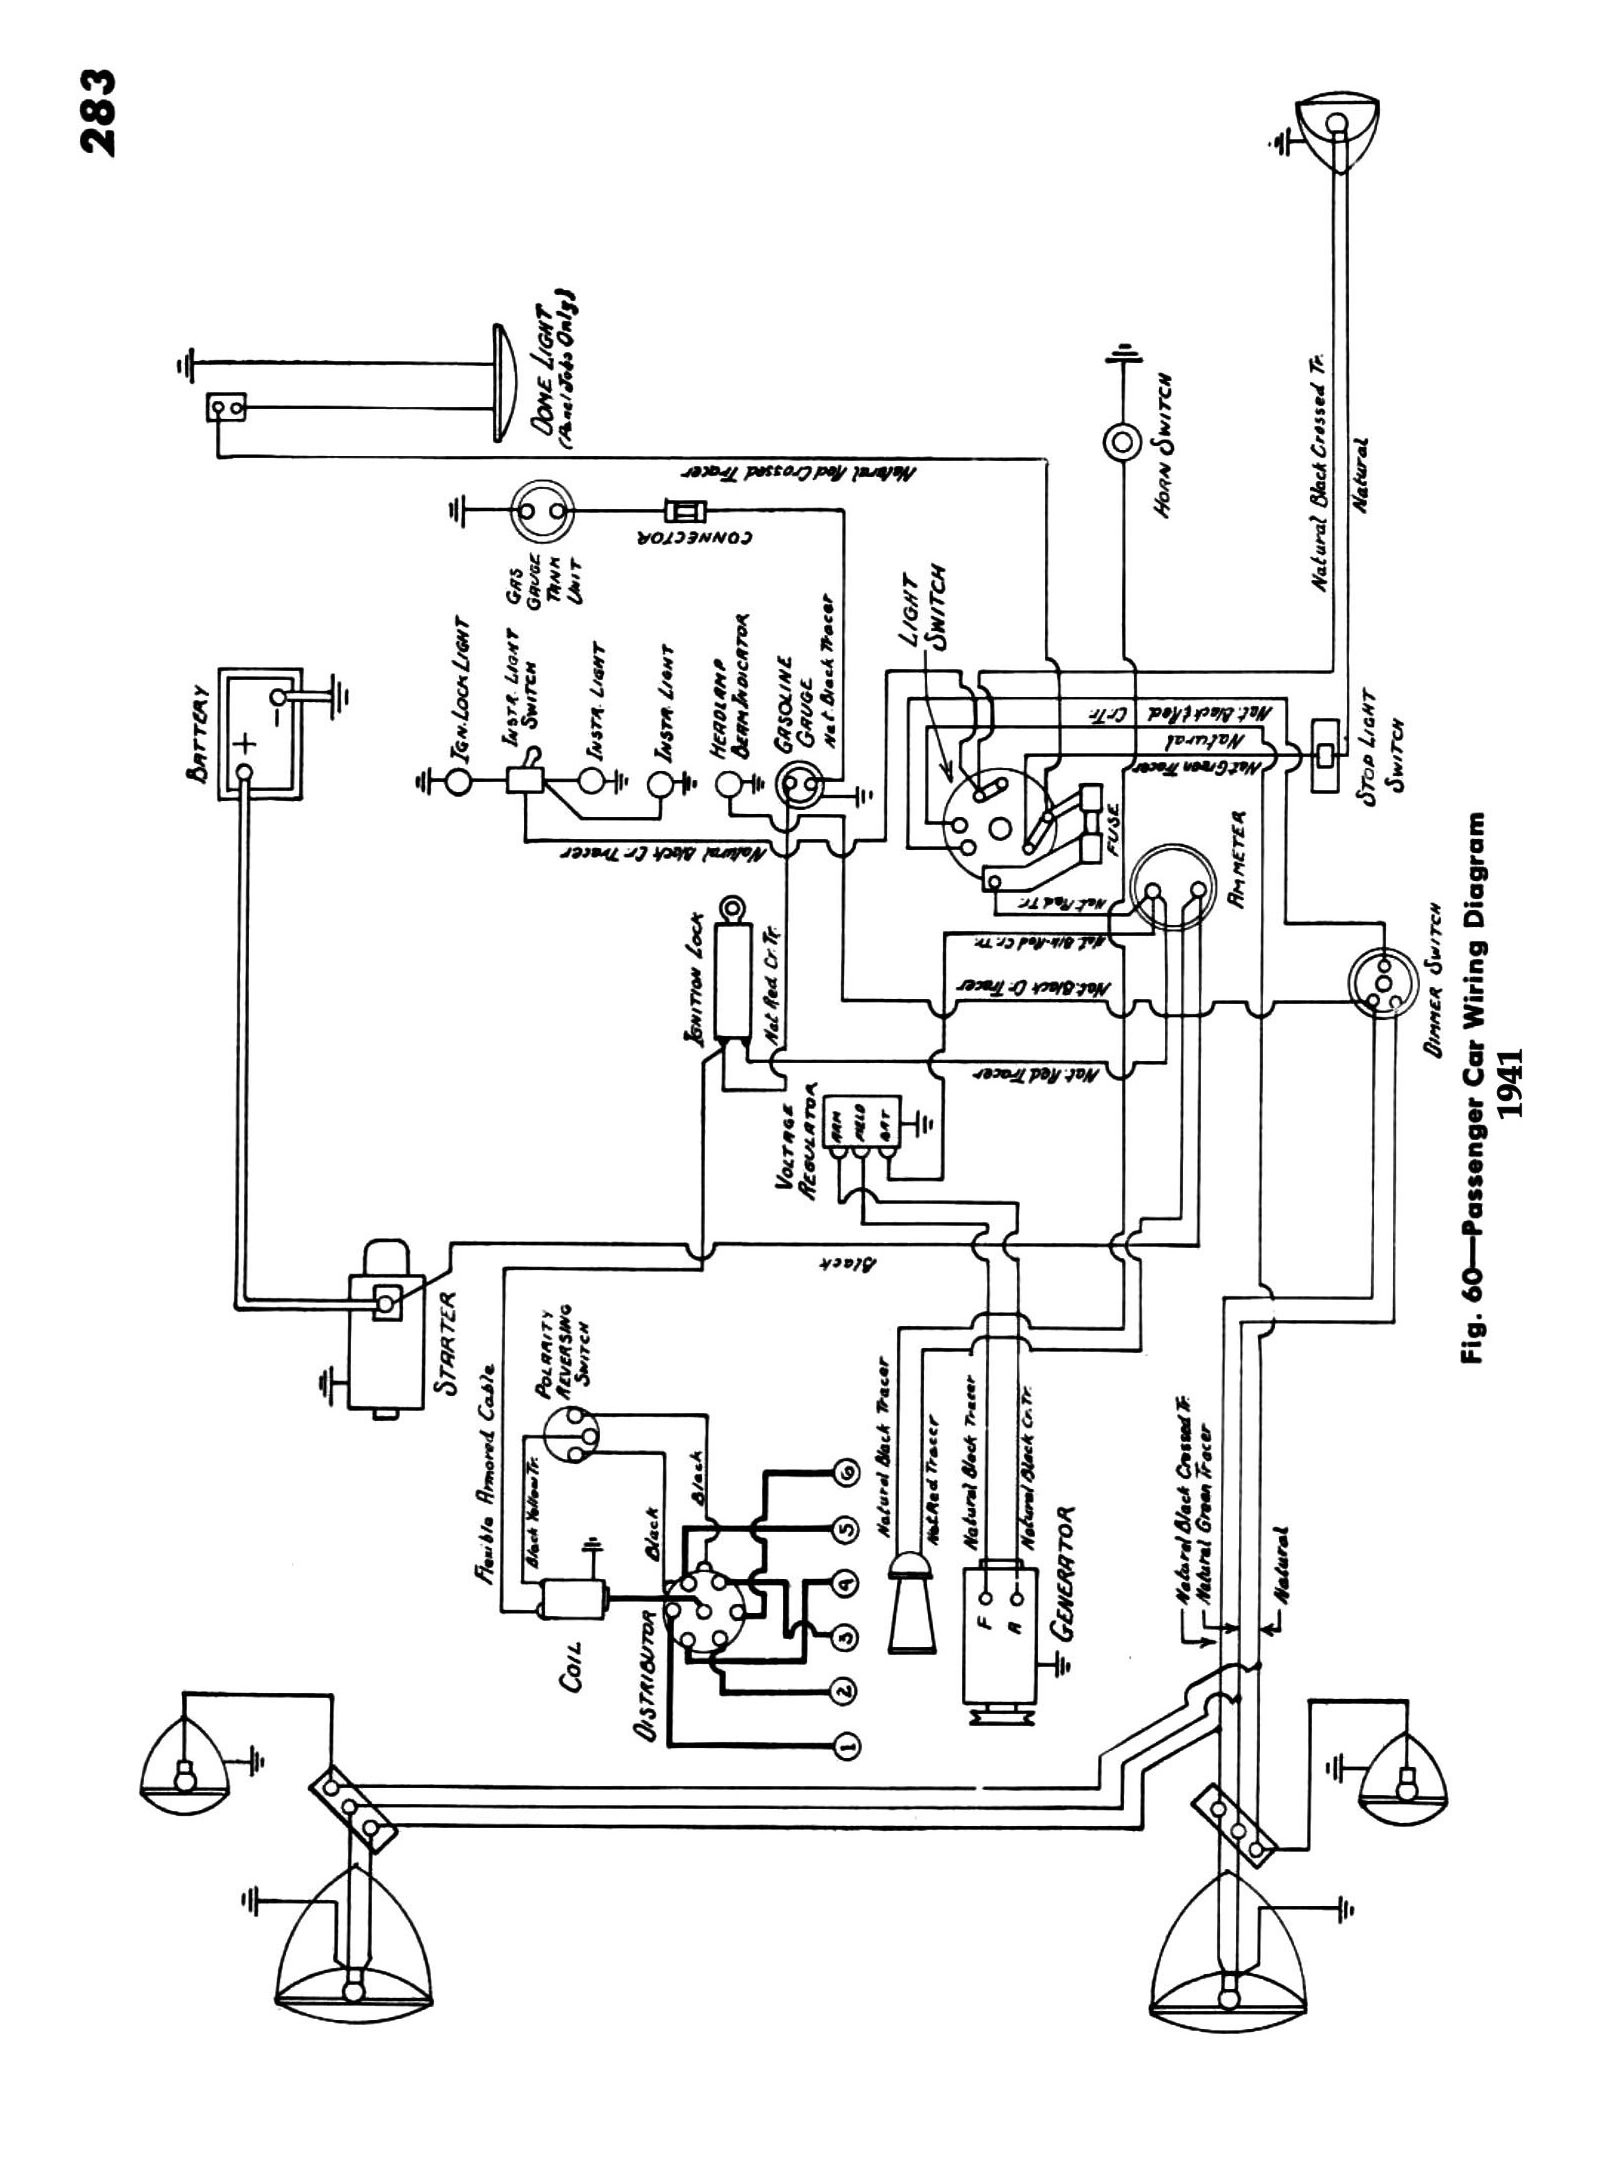 Chevy 350 Hei Distributor Wiring Diagram - Roslonek.net